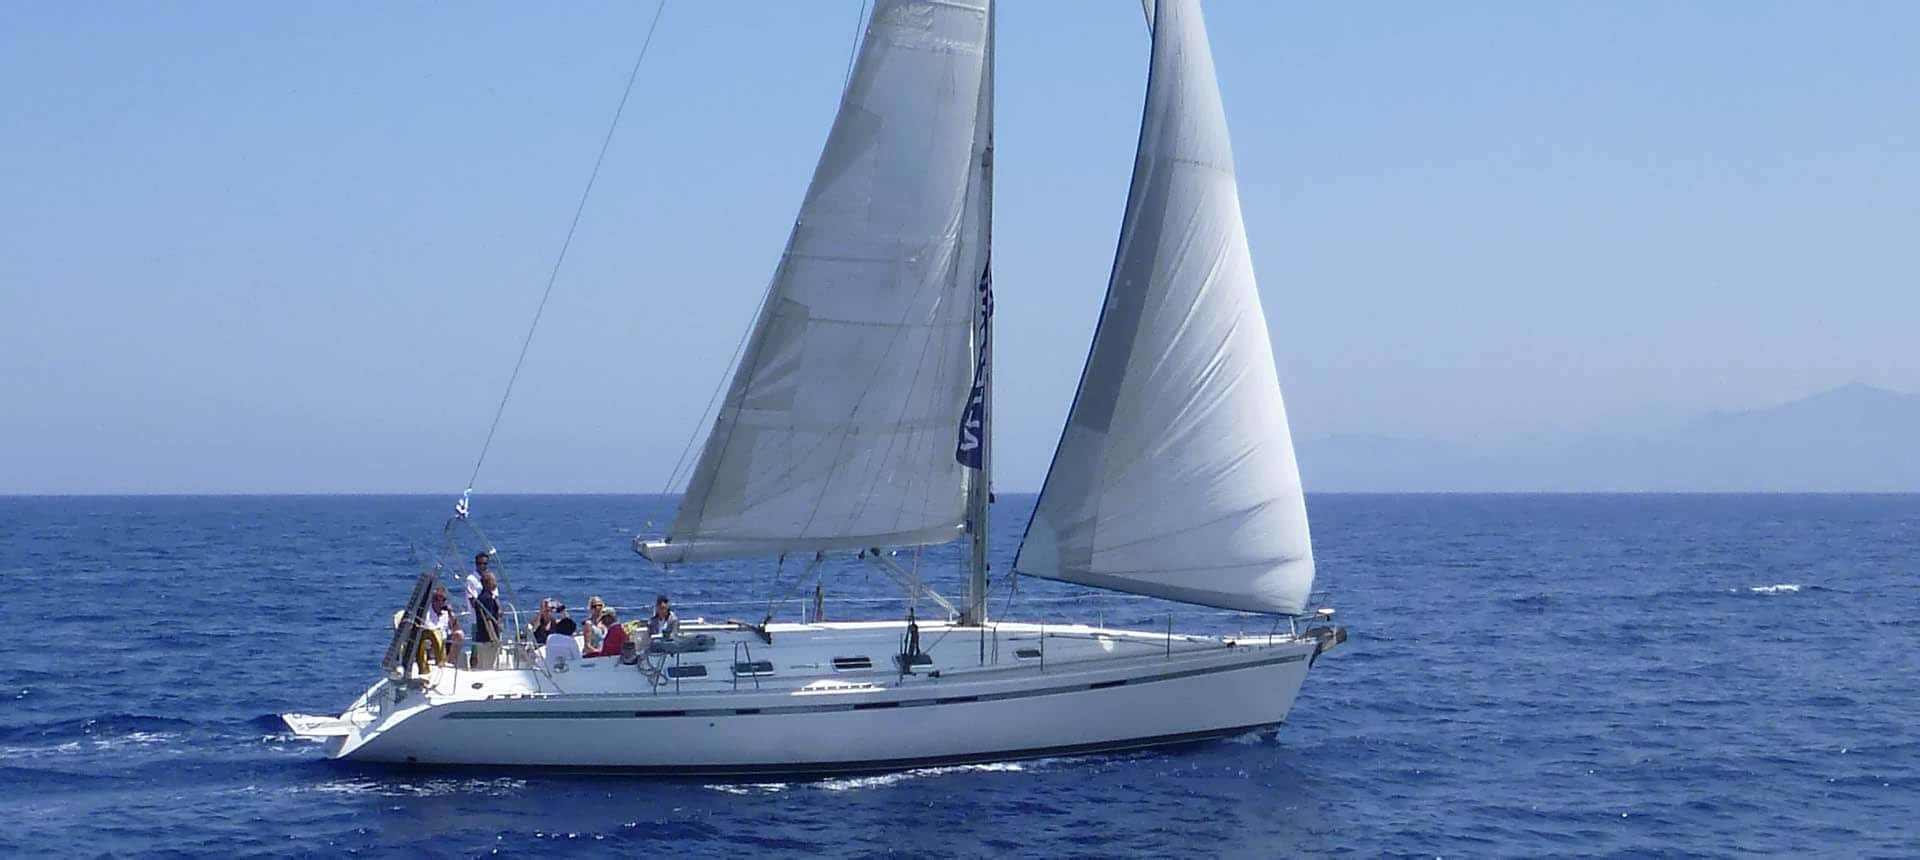 Yacht charter Crete, family vacations, sailing education